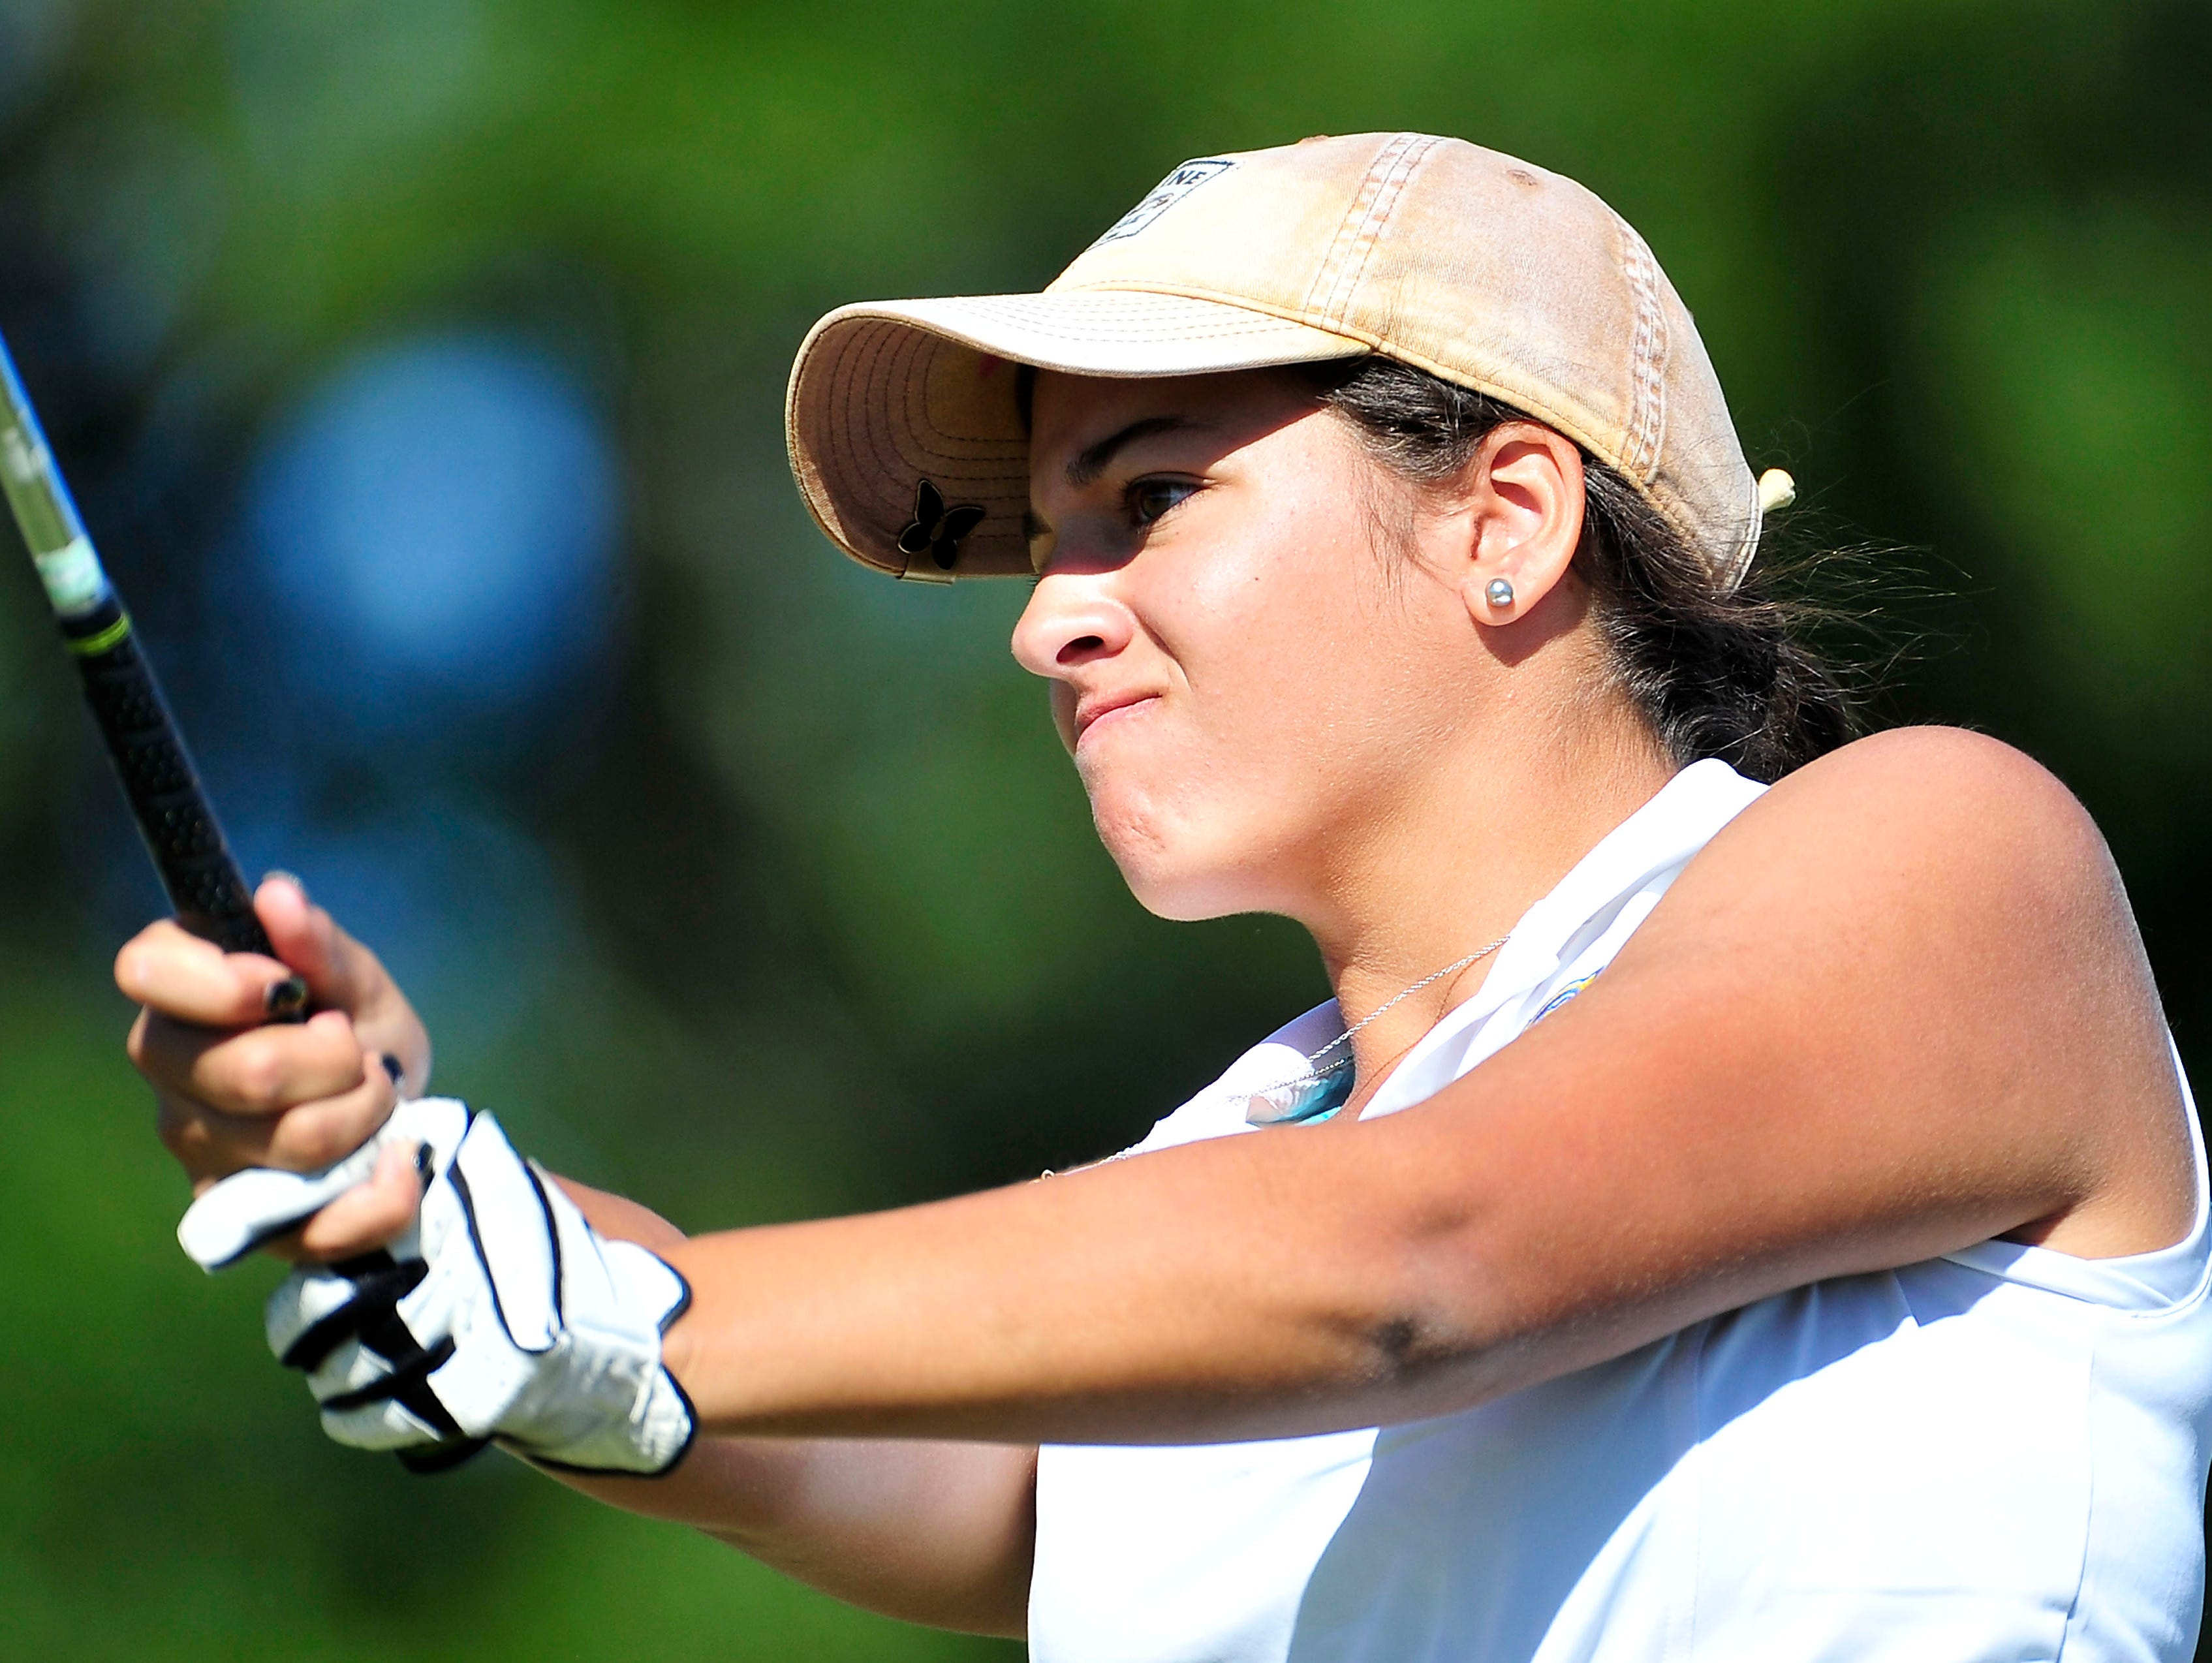 Clarksville Academy's Mallory Saleh watches her tee shot on the 11th hole box during the Class A/AA State Golf Tournament at WillowBrook Golf Club in Manchester, Tenn., Wednesday, Oct. 14, 2015.